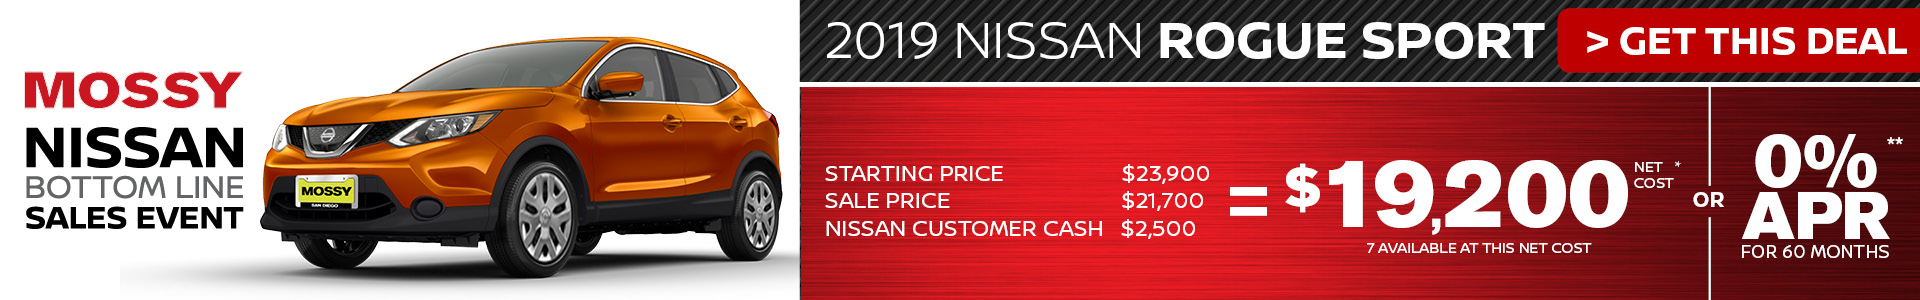 Mossy Nissan - Nissan Rogue Sport $19,200 Purchase